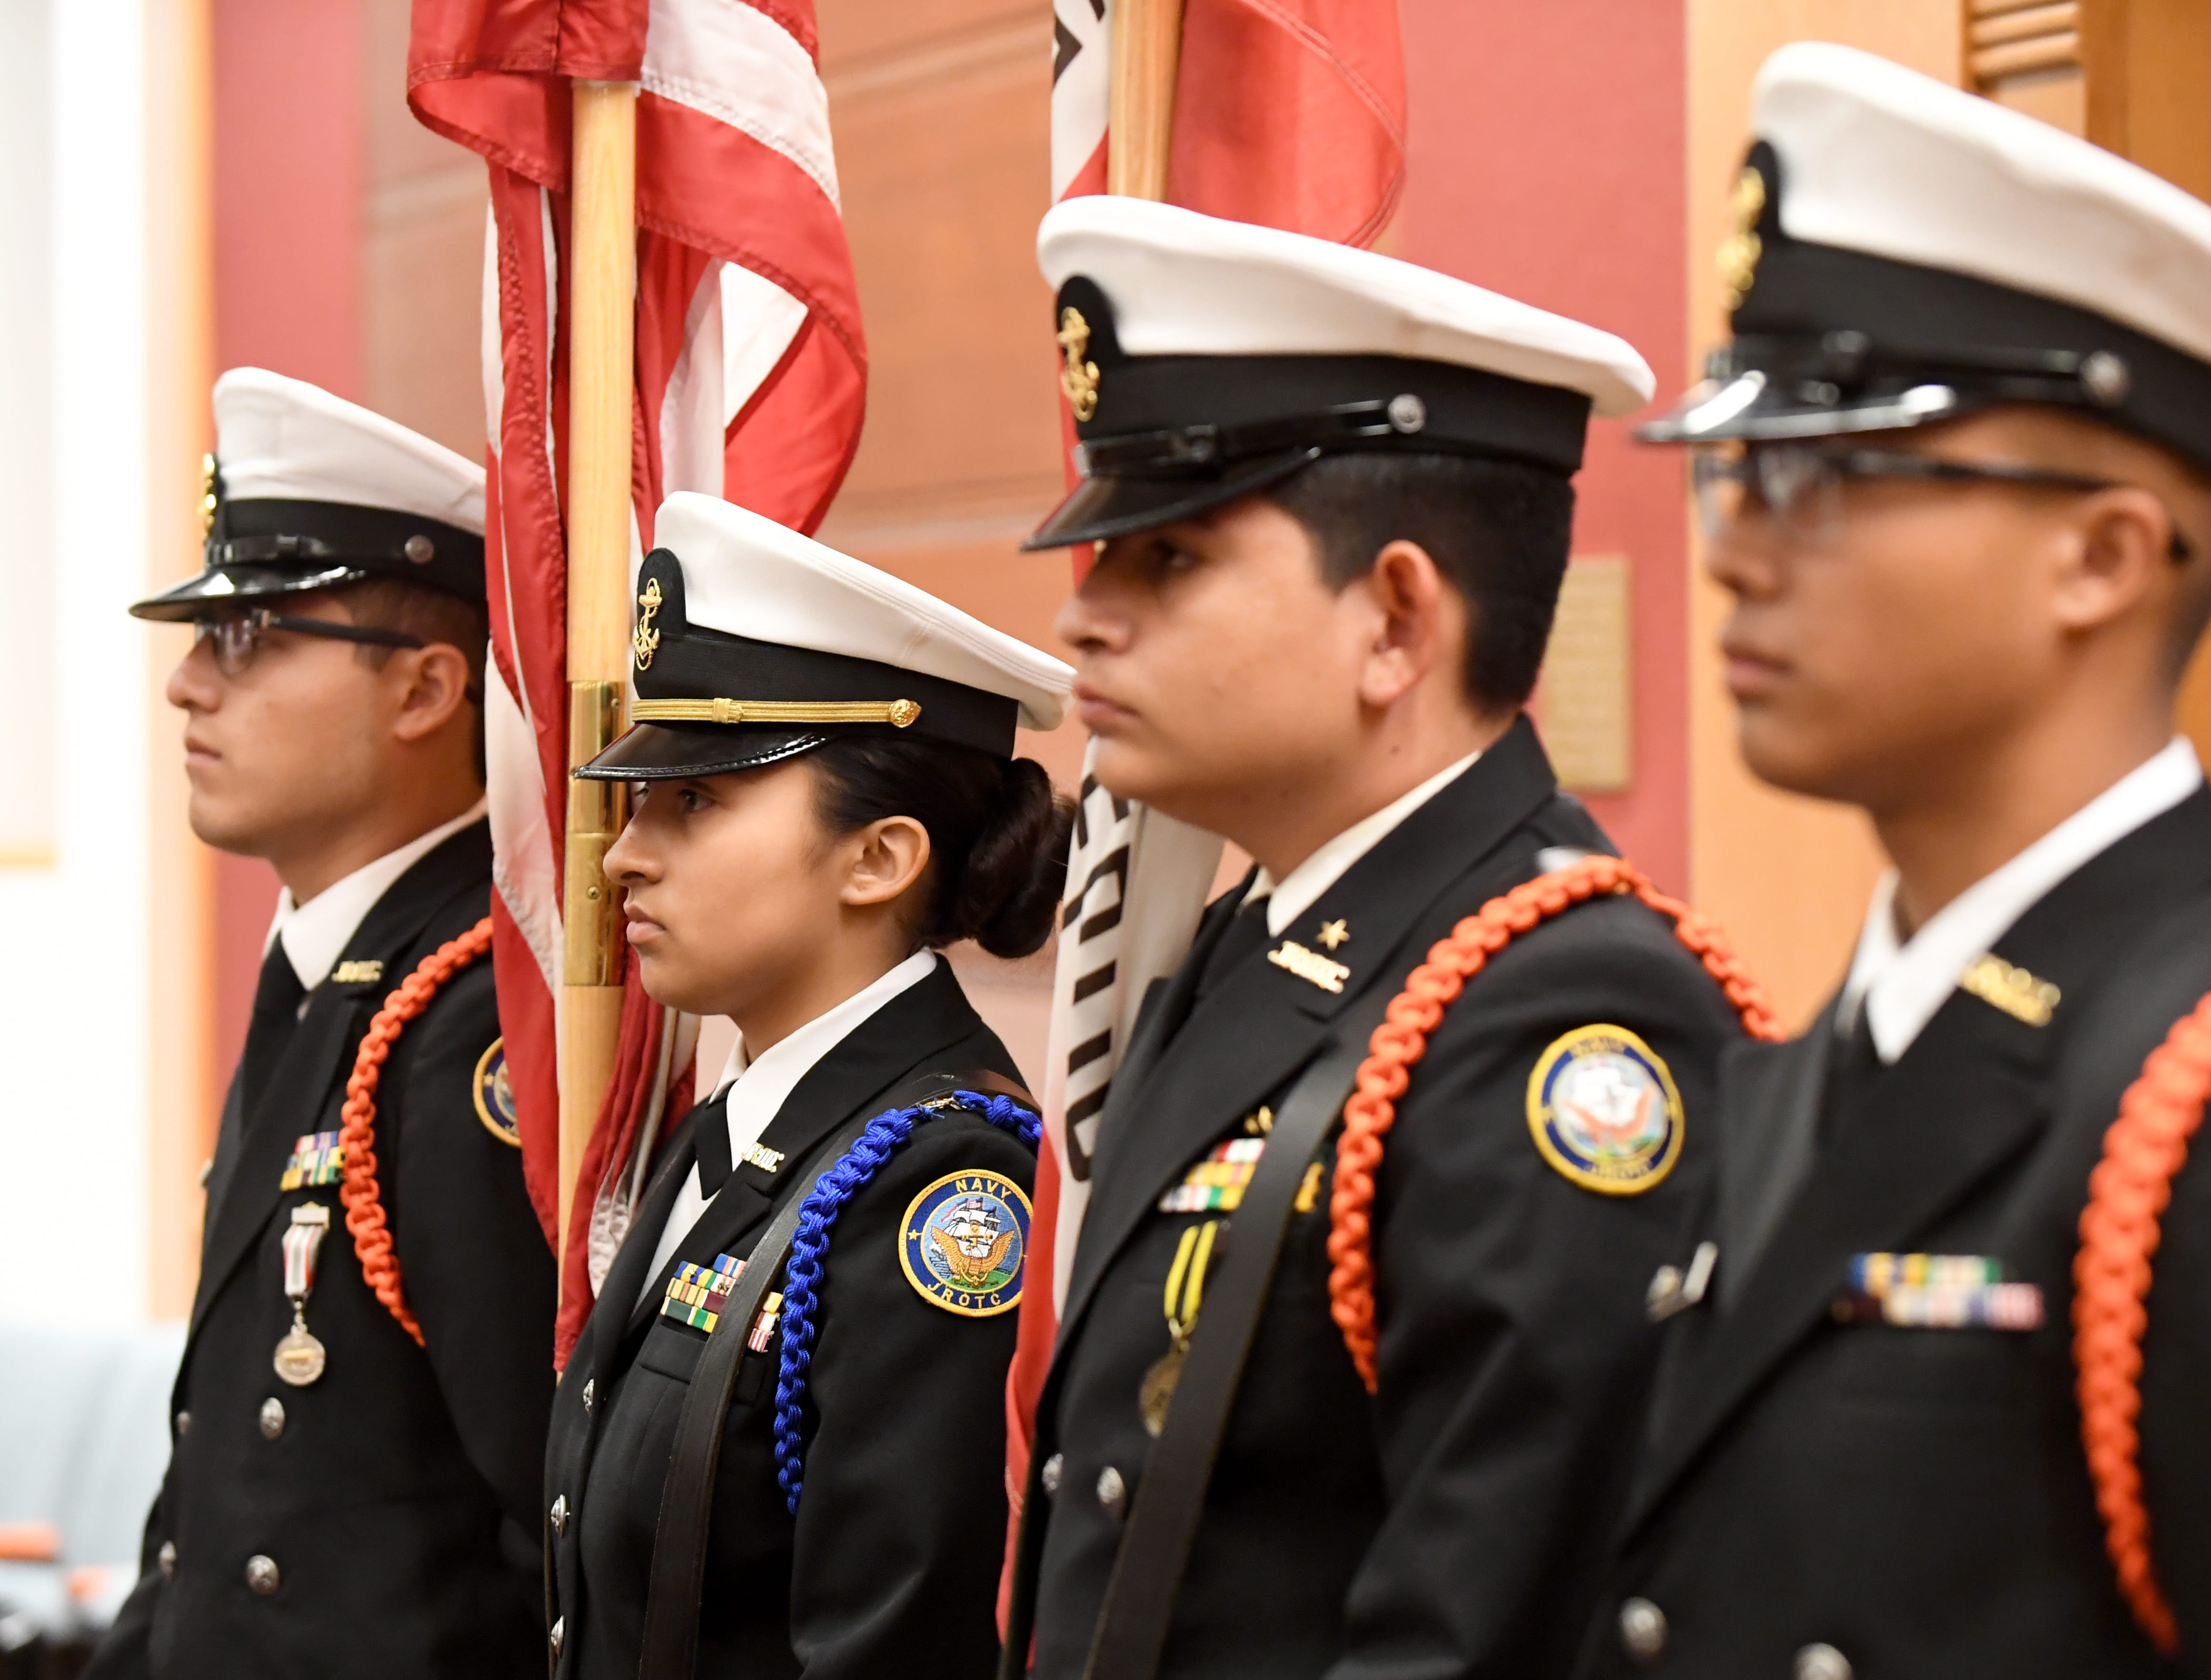 Members of the Everett Alvarez High School's Navy Junior Reserve Officer Training Core program helped open the National Day of Remembrance for Murder Victims ceremony.